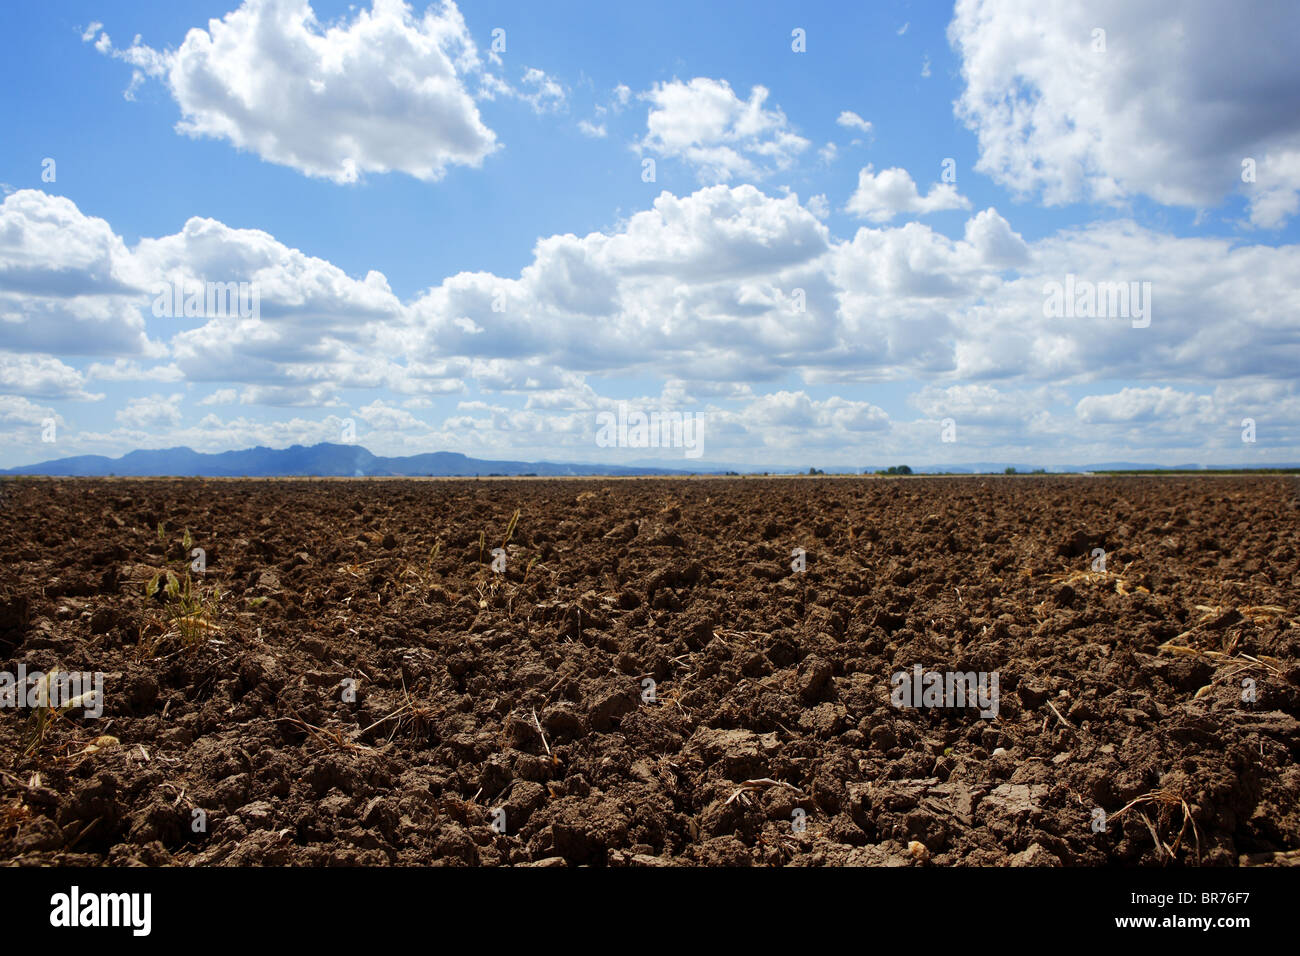 plough plowed brown clay soil field blue sky horizon - Stock Image